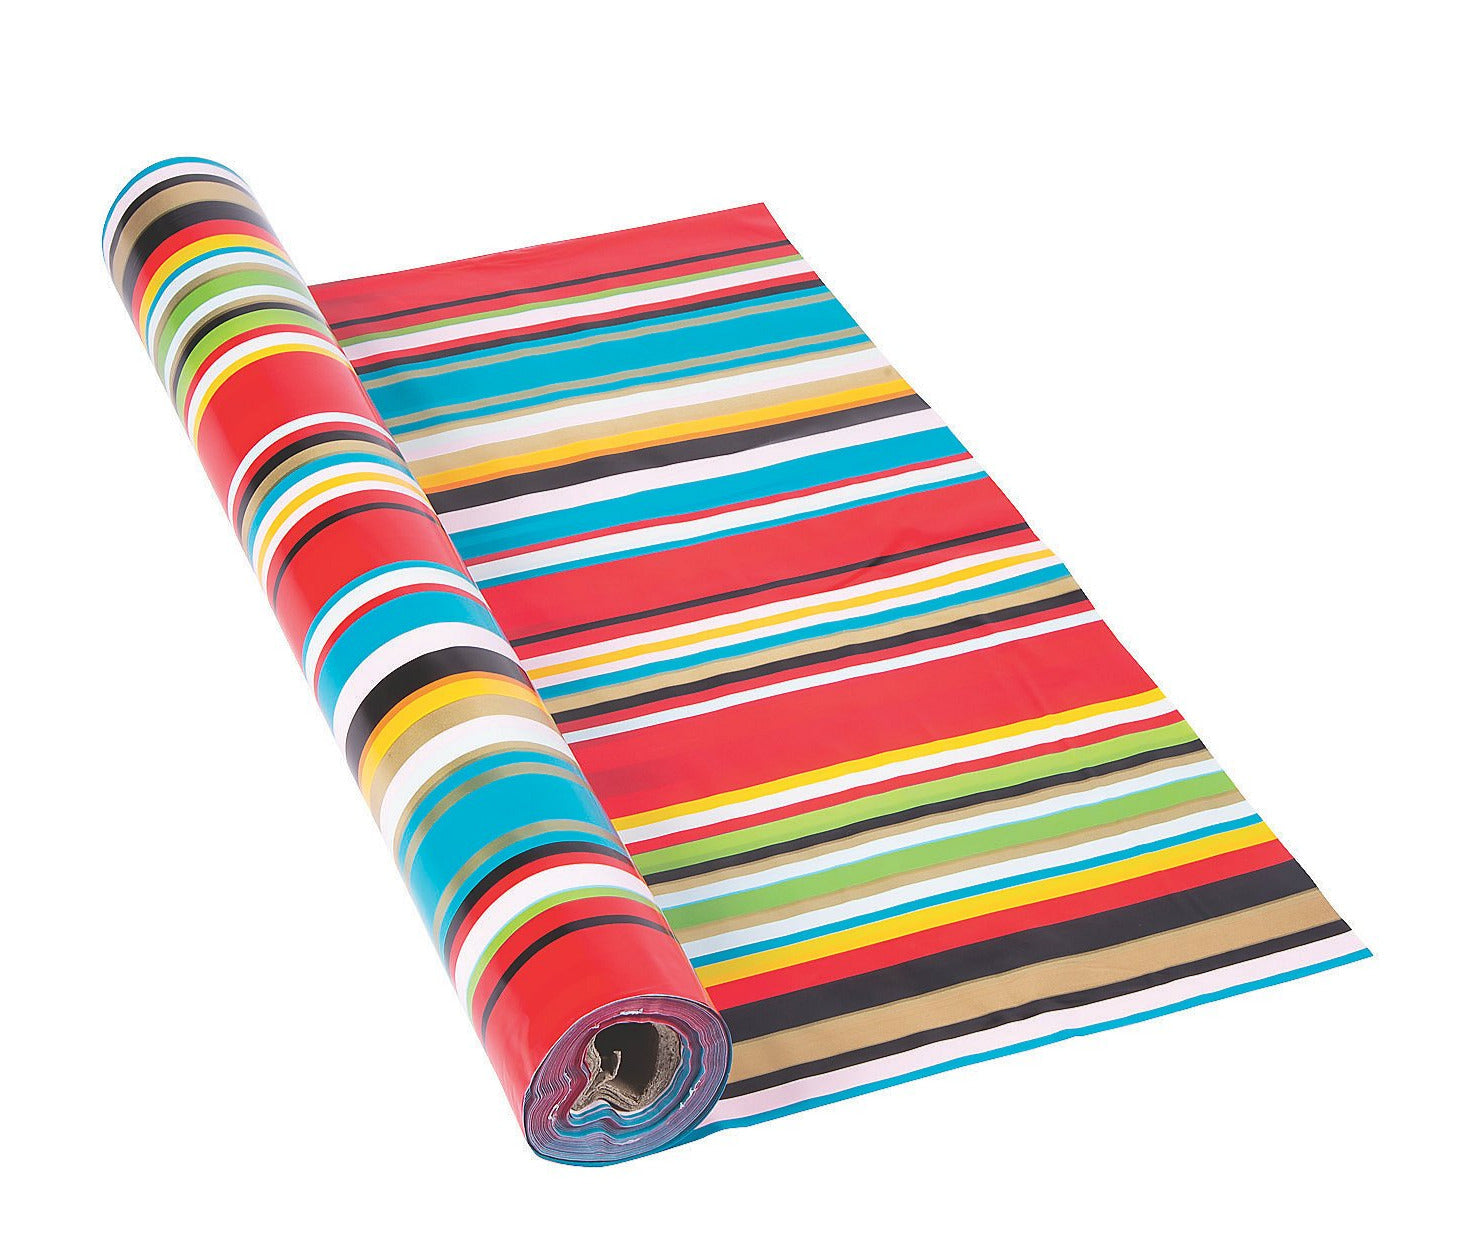 Fiesta Serape Banquet Table Cover Roll - 100ft